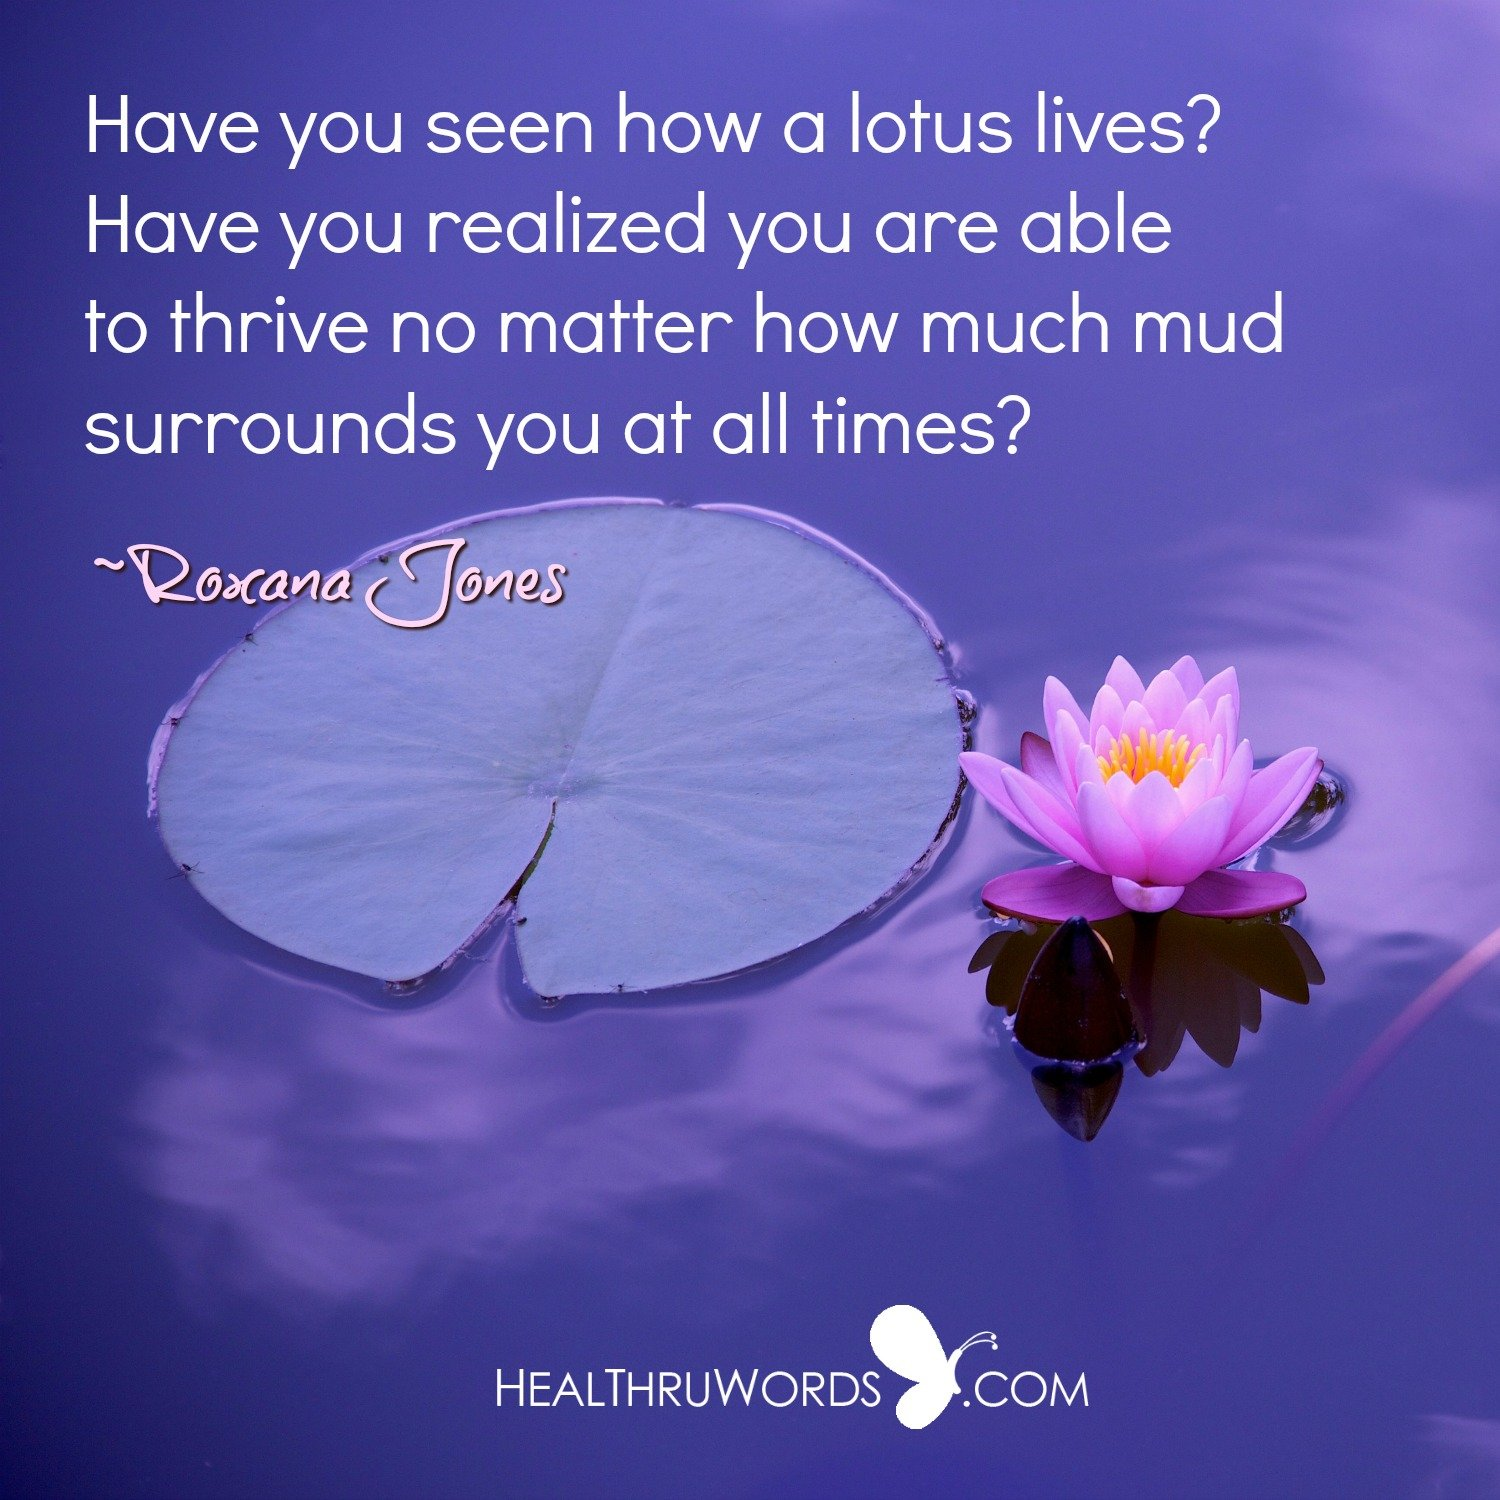 Inspirational Image: Like a Lotus